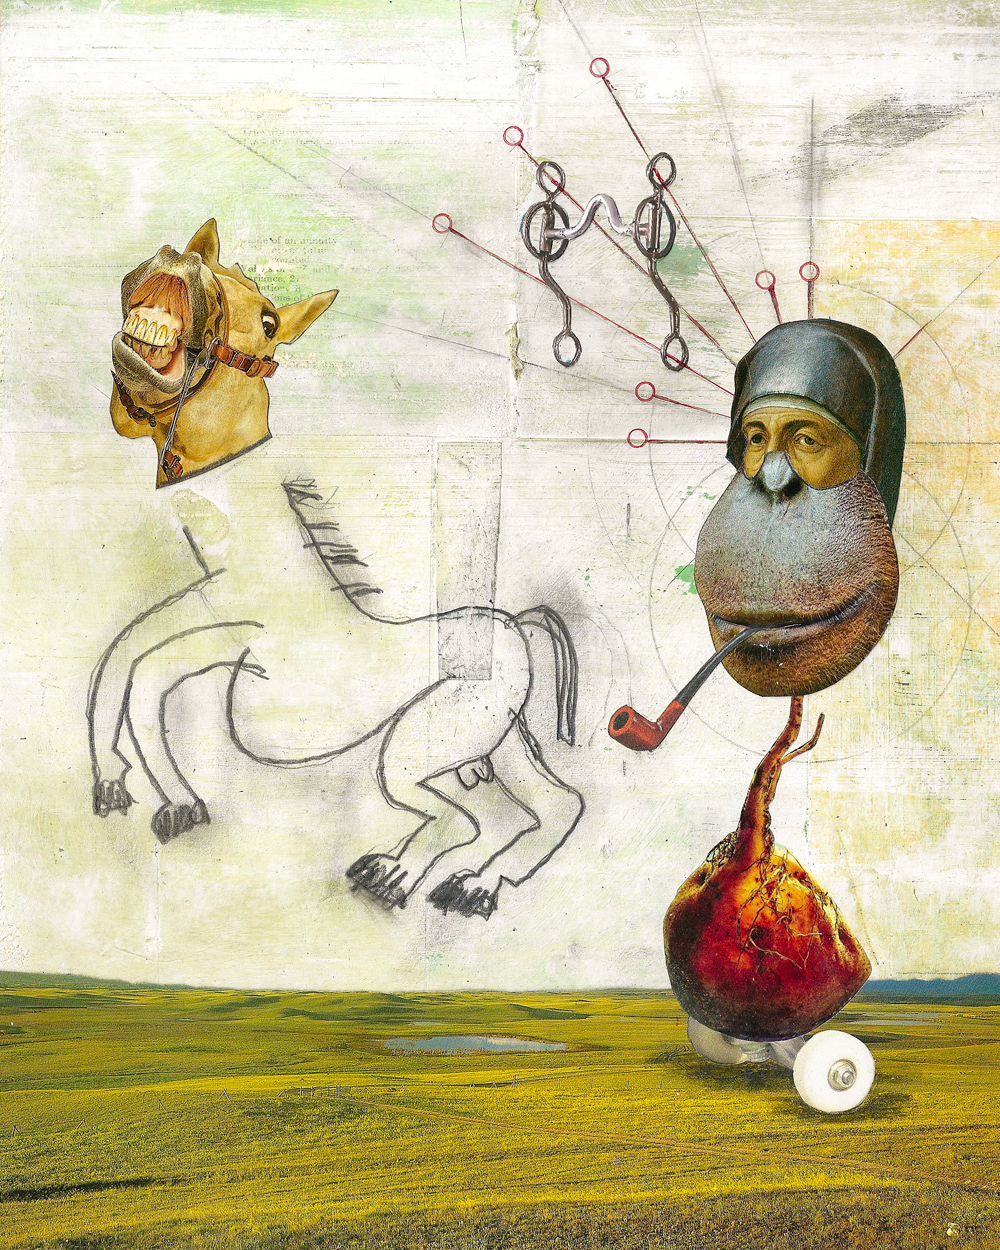 """Picasso Horse - This collage began as a sketch, but it caught the attention of a publisher I had worked with previously and they liked it enough to use it for the cover of a book on gambling. The book is now out of print, but I think it was titled, The Handicapper's Guide To Chariot Racing.Anyway, the horse has changed. The horse did not have that look of horror on its face when I made this collage. At that time, the horse was happy, or at least normal—I don't know much about horses—now, however, he looks positively terrified.The reason for the terror, I've gathered, is because the horse has learned that his body was not drawn by Picasso but by me. Apparently he was under the impression that he was a great work of art and worth a lot of money. Upon learning that he isn't a Picasso, he's become rather violent. I know where his confusion comes from, but I swear we talked about this.What happened was I was at LACMA walking past a Picasso when I overheard someone say: Pfft, my kid could do that.I've heard the sentiment many times and I always think, yeah your kid could do that, your mom could do that, anybody could do that—but they did not do that, Picasso did that.And that's when it suddenly occurred to me: wait, can I do that?I've always presumed I can do that, but I had to admit I had never tried. Seems pretty easy. But then Picasso did once say: it took me four years to paint like Raphael, but a lifetime to paint like a child.Is making child art that difficult? I decided to find out by trying to replicate a childish Picasso.The image I chose to copy was a drawing titled, """"Battle Of The Centaurs III,"""" which features a couple of ham-fisted centaurs scrawled with a stubby pencil—just garbage. My attempt isn't exactly like Picasso's horse, but it's """"close enough for jazz,"""" as I like to say. (I like to say that because jazz sometimes sounds like a group of people learning how to play their instruments.)I thought the horse understood his body's provenance, but apparently """